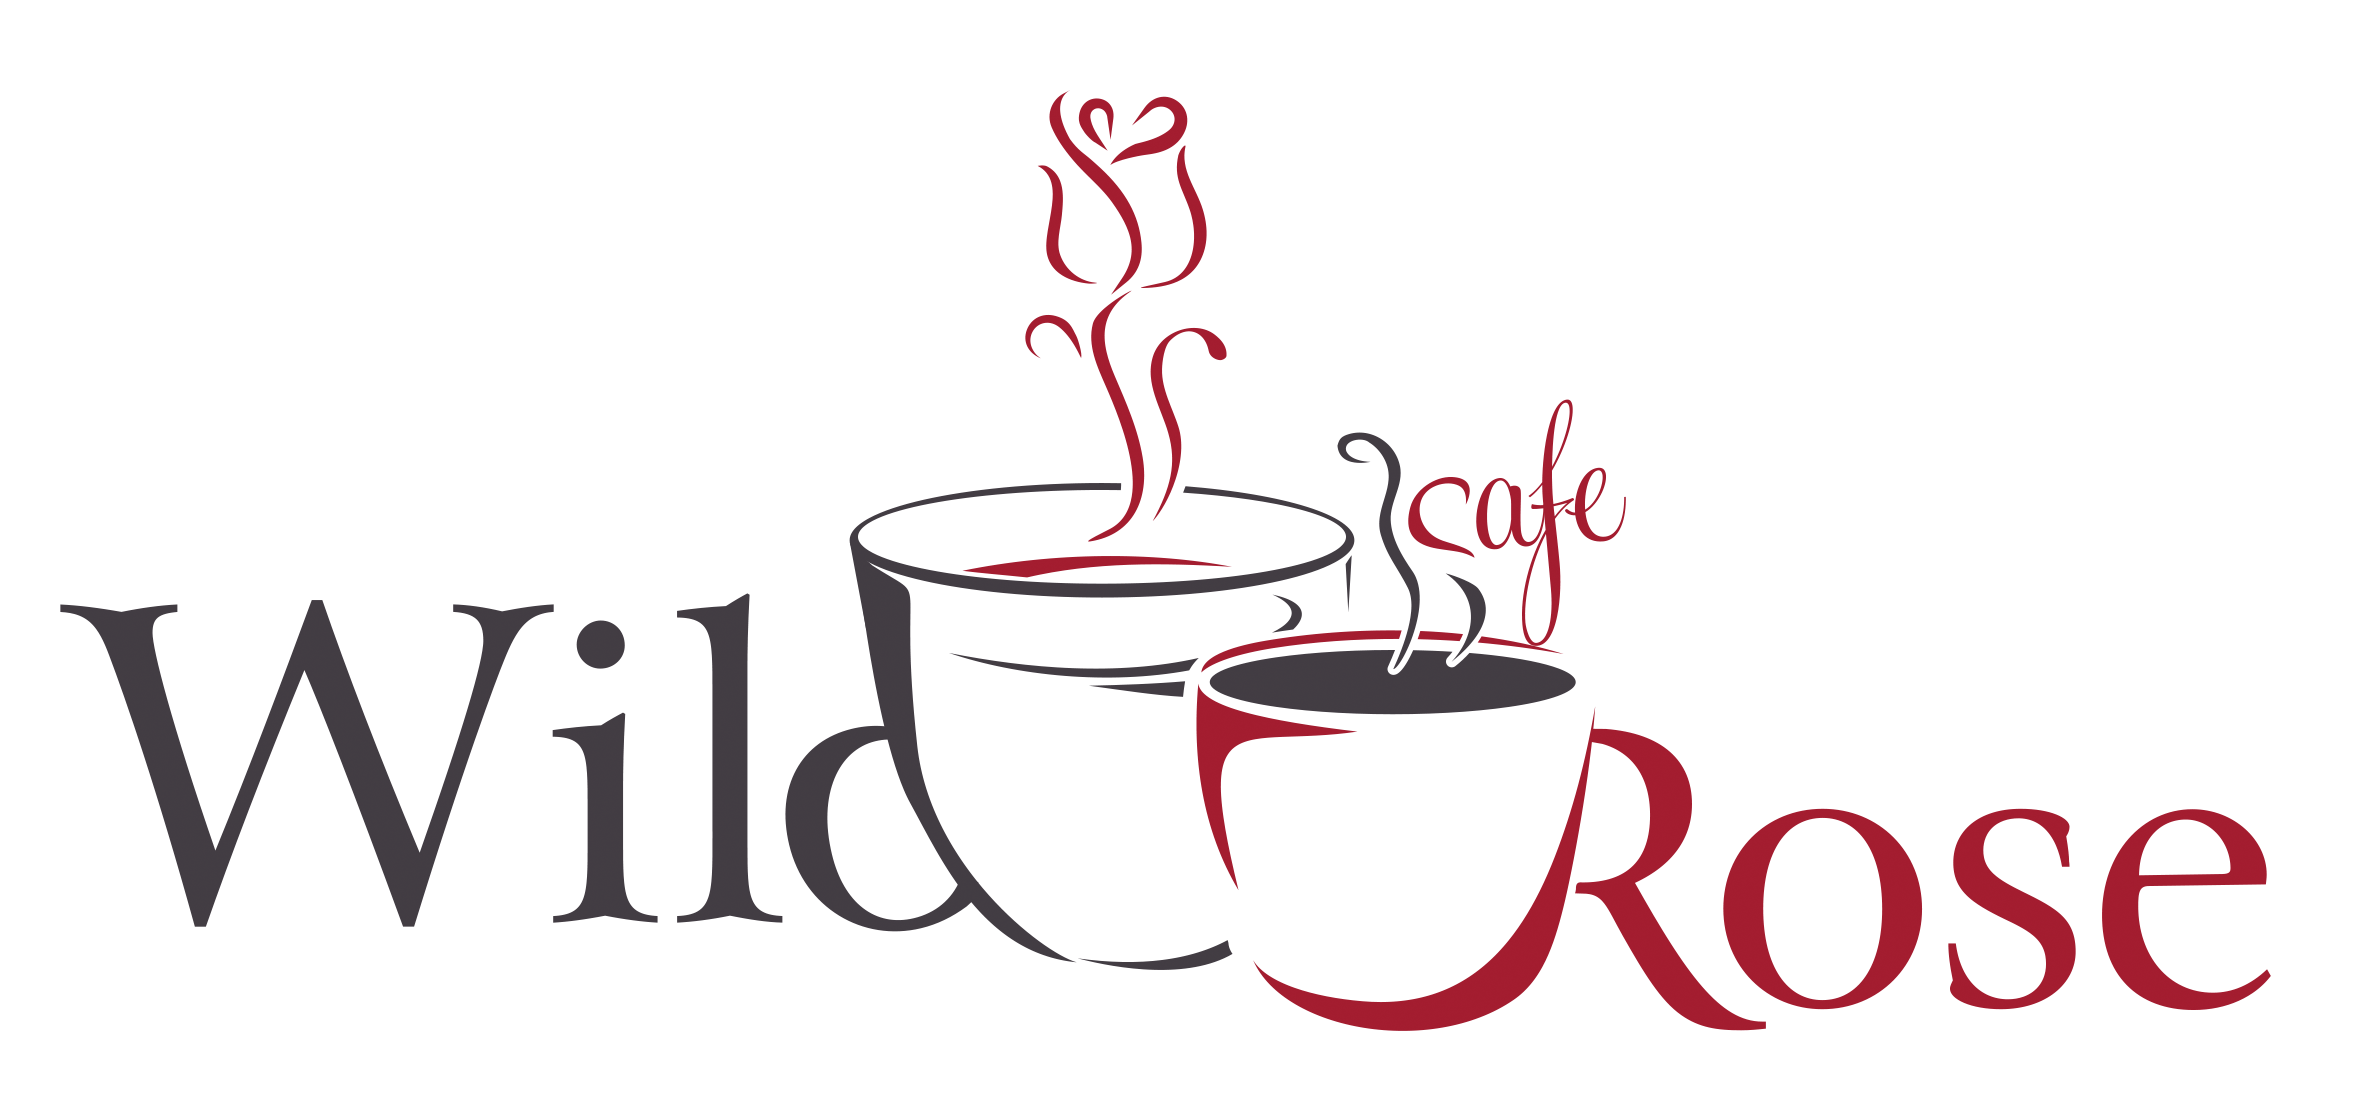 wild rose cafe logo transparent